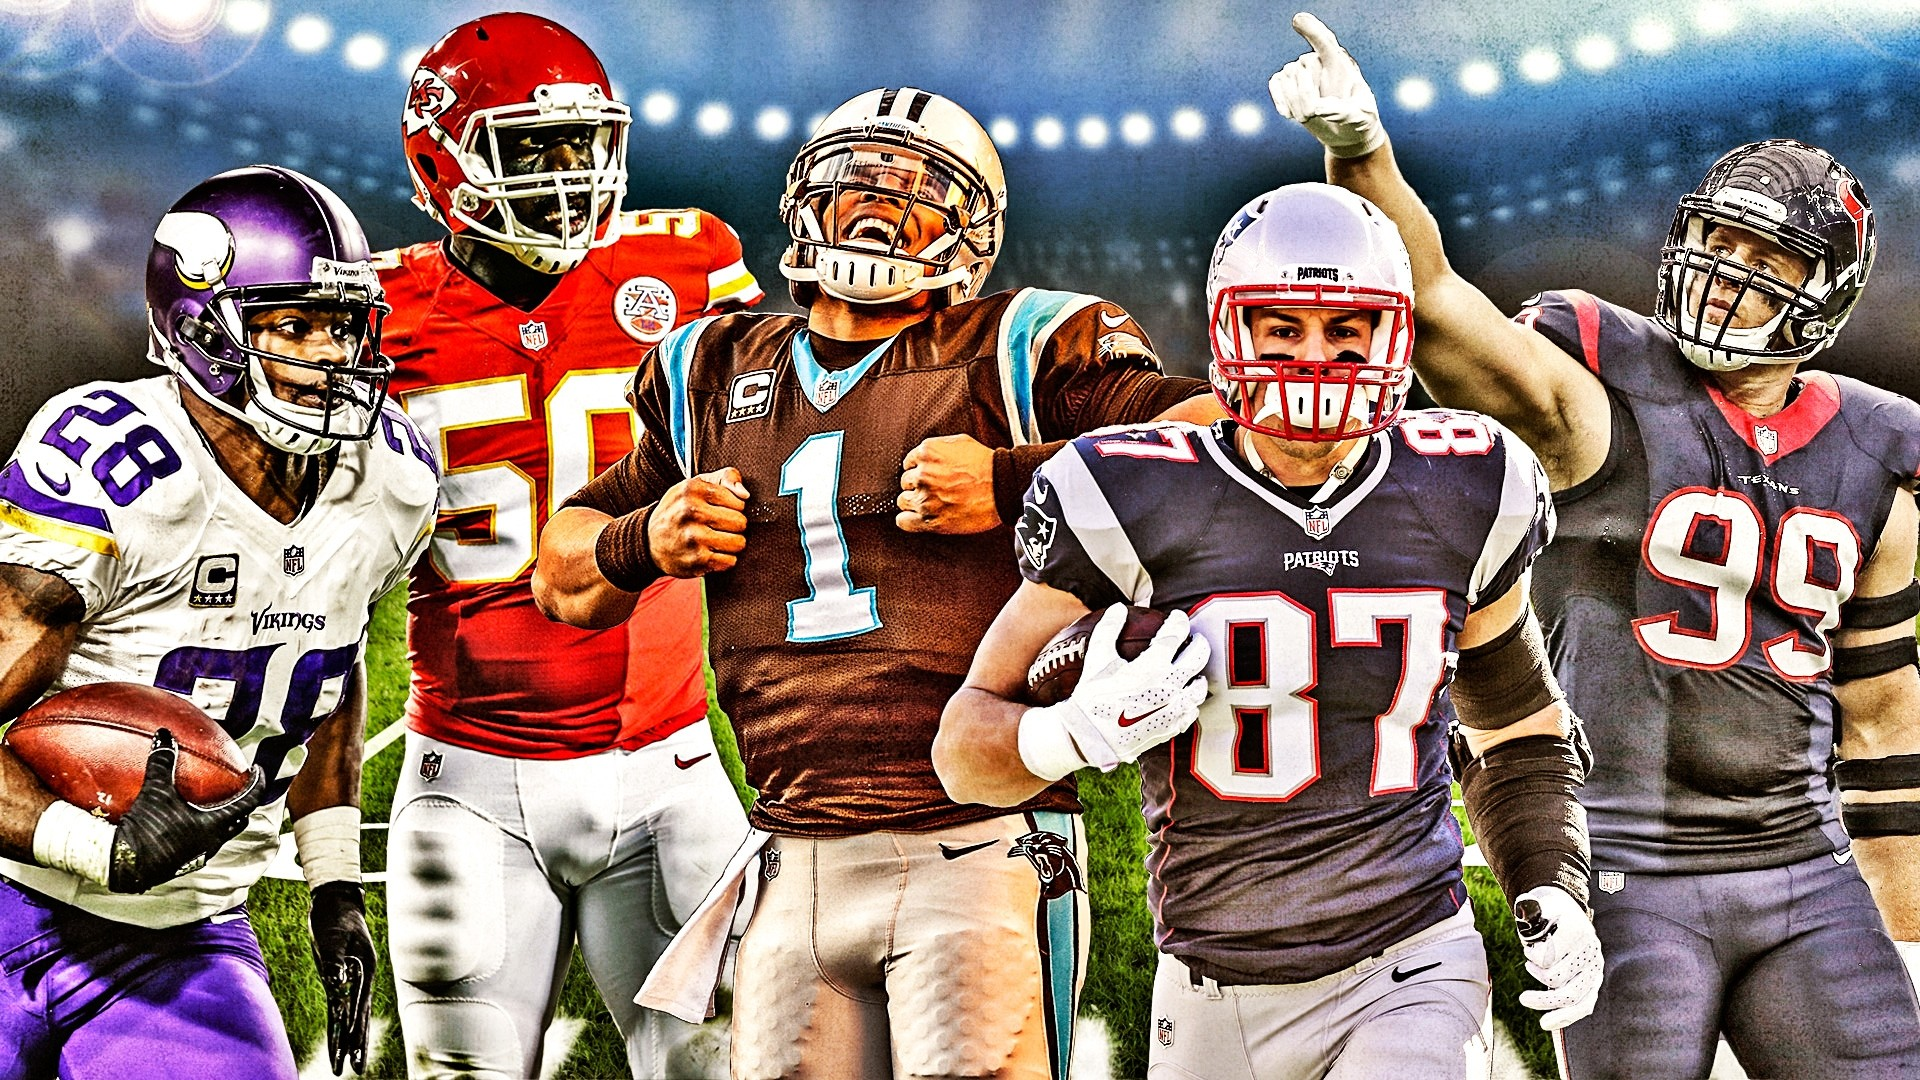 Top Nfl Football Players Wallpapers